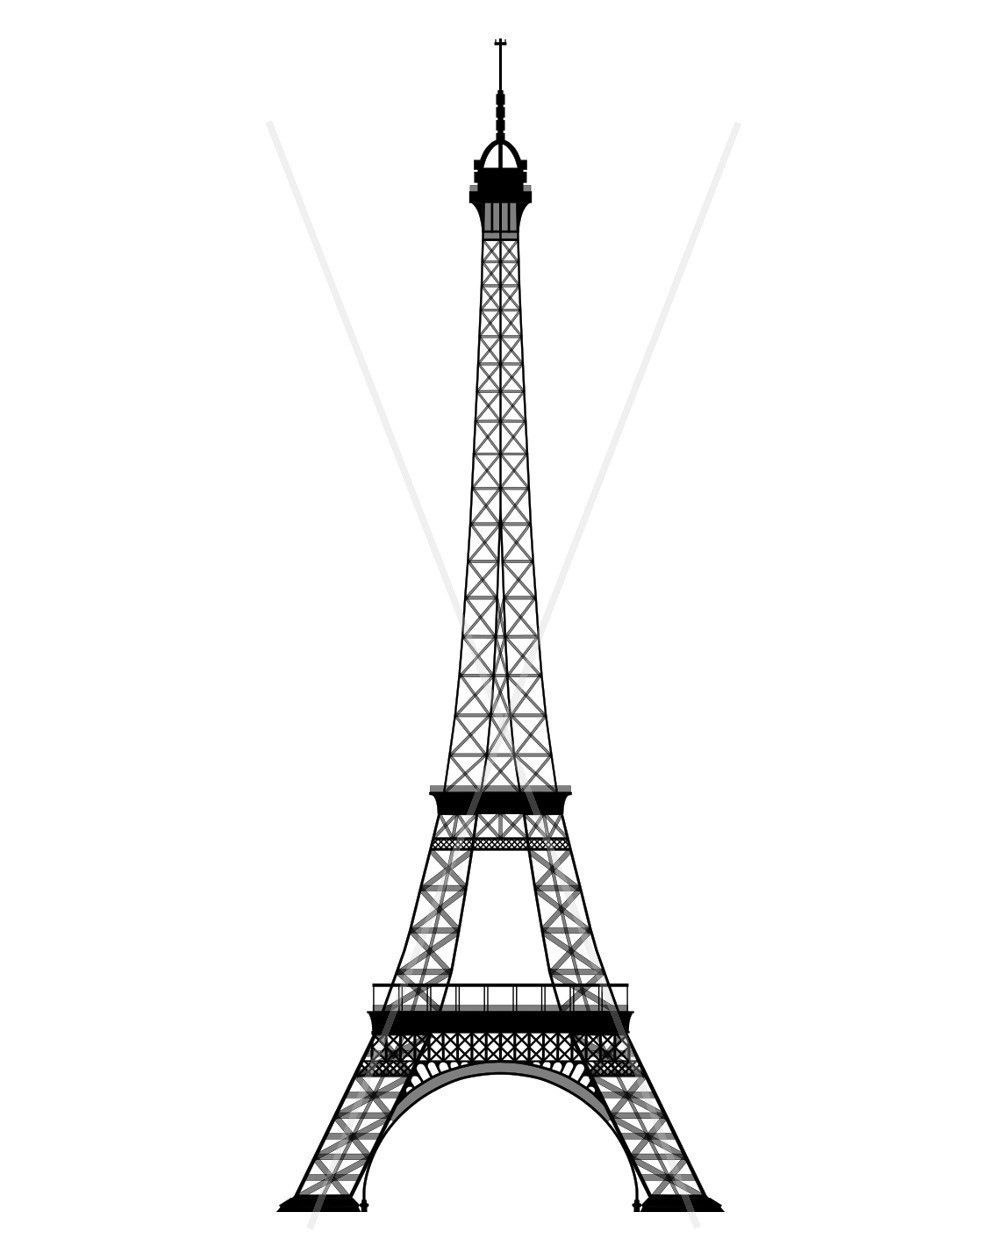 Jls colouring pages to print - Eiffel Tower Coloring Page Coloring Eiffel Page Tower Free Coloring Pages Quilling Template